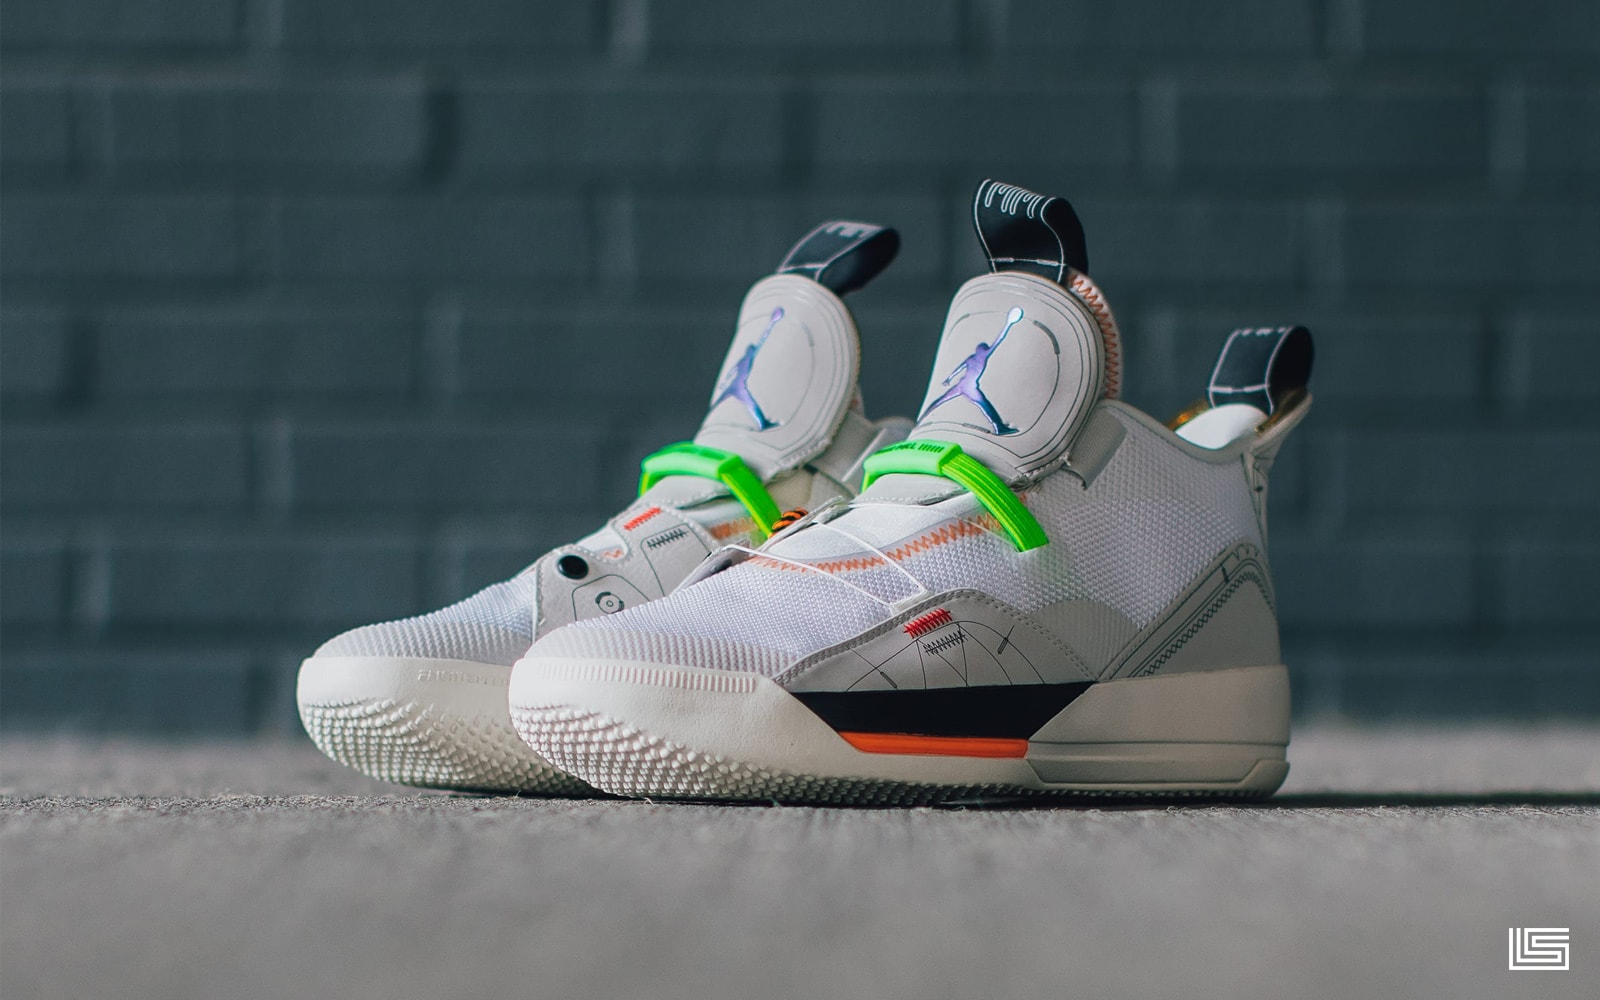 3dac9ea7ce6 The Air Jordan 33 will be released Thursday, March 7 both in-store and  online HERE.